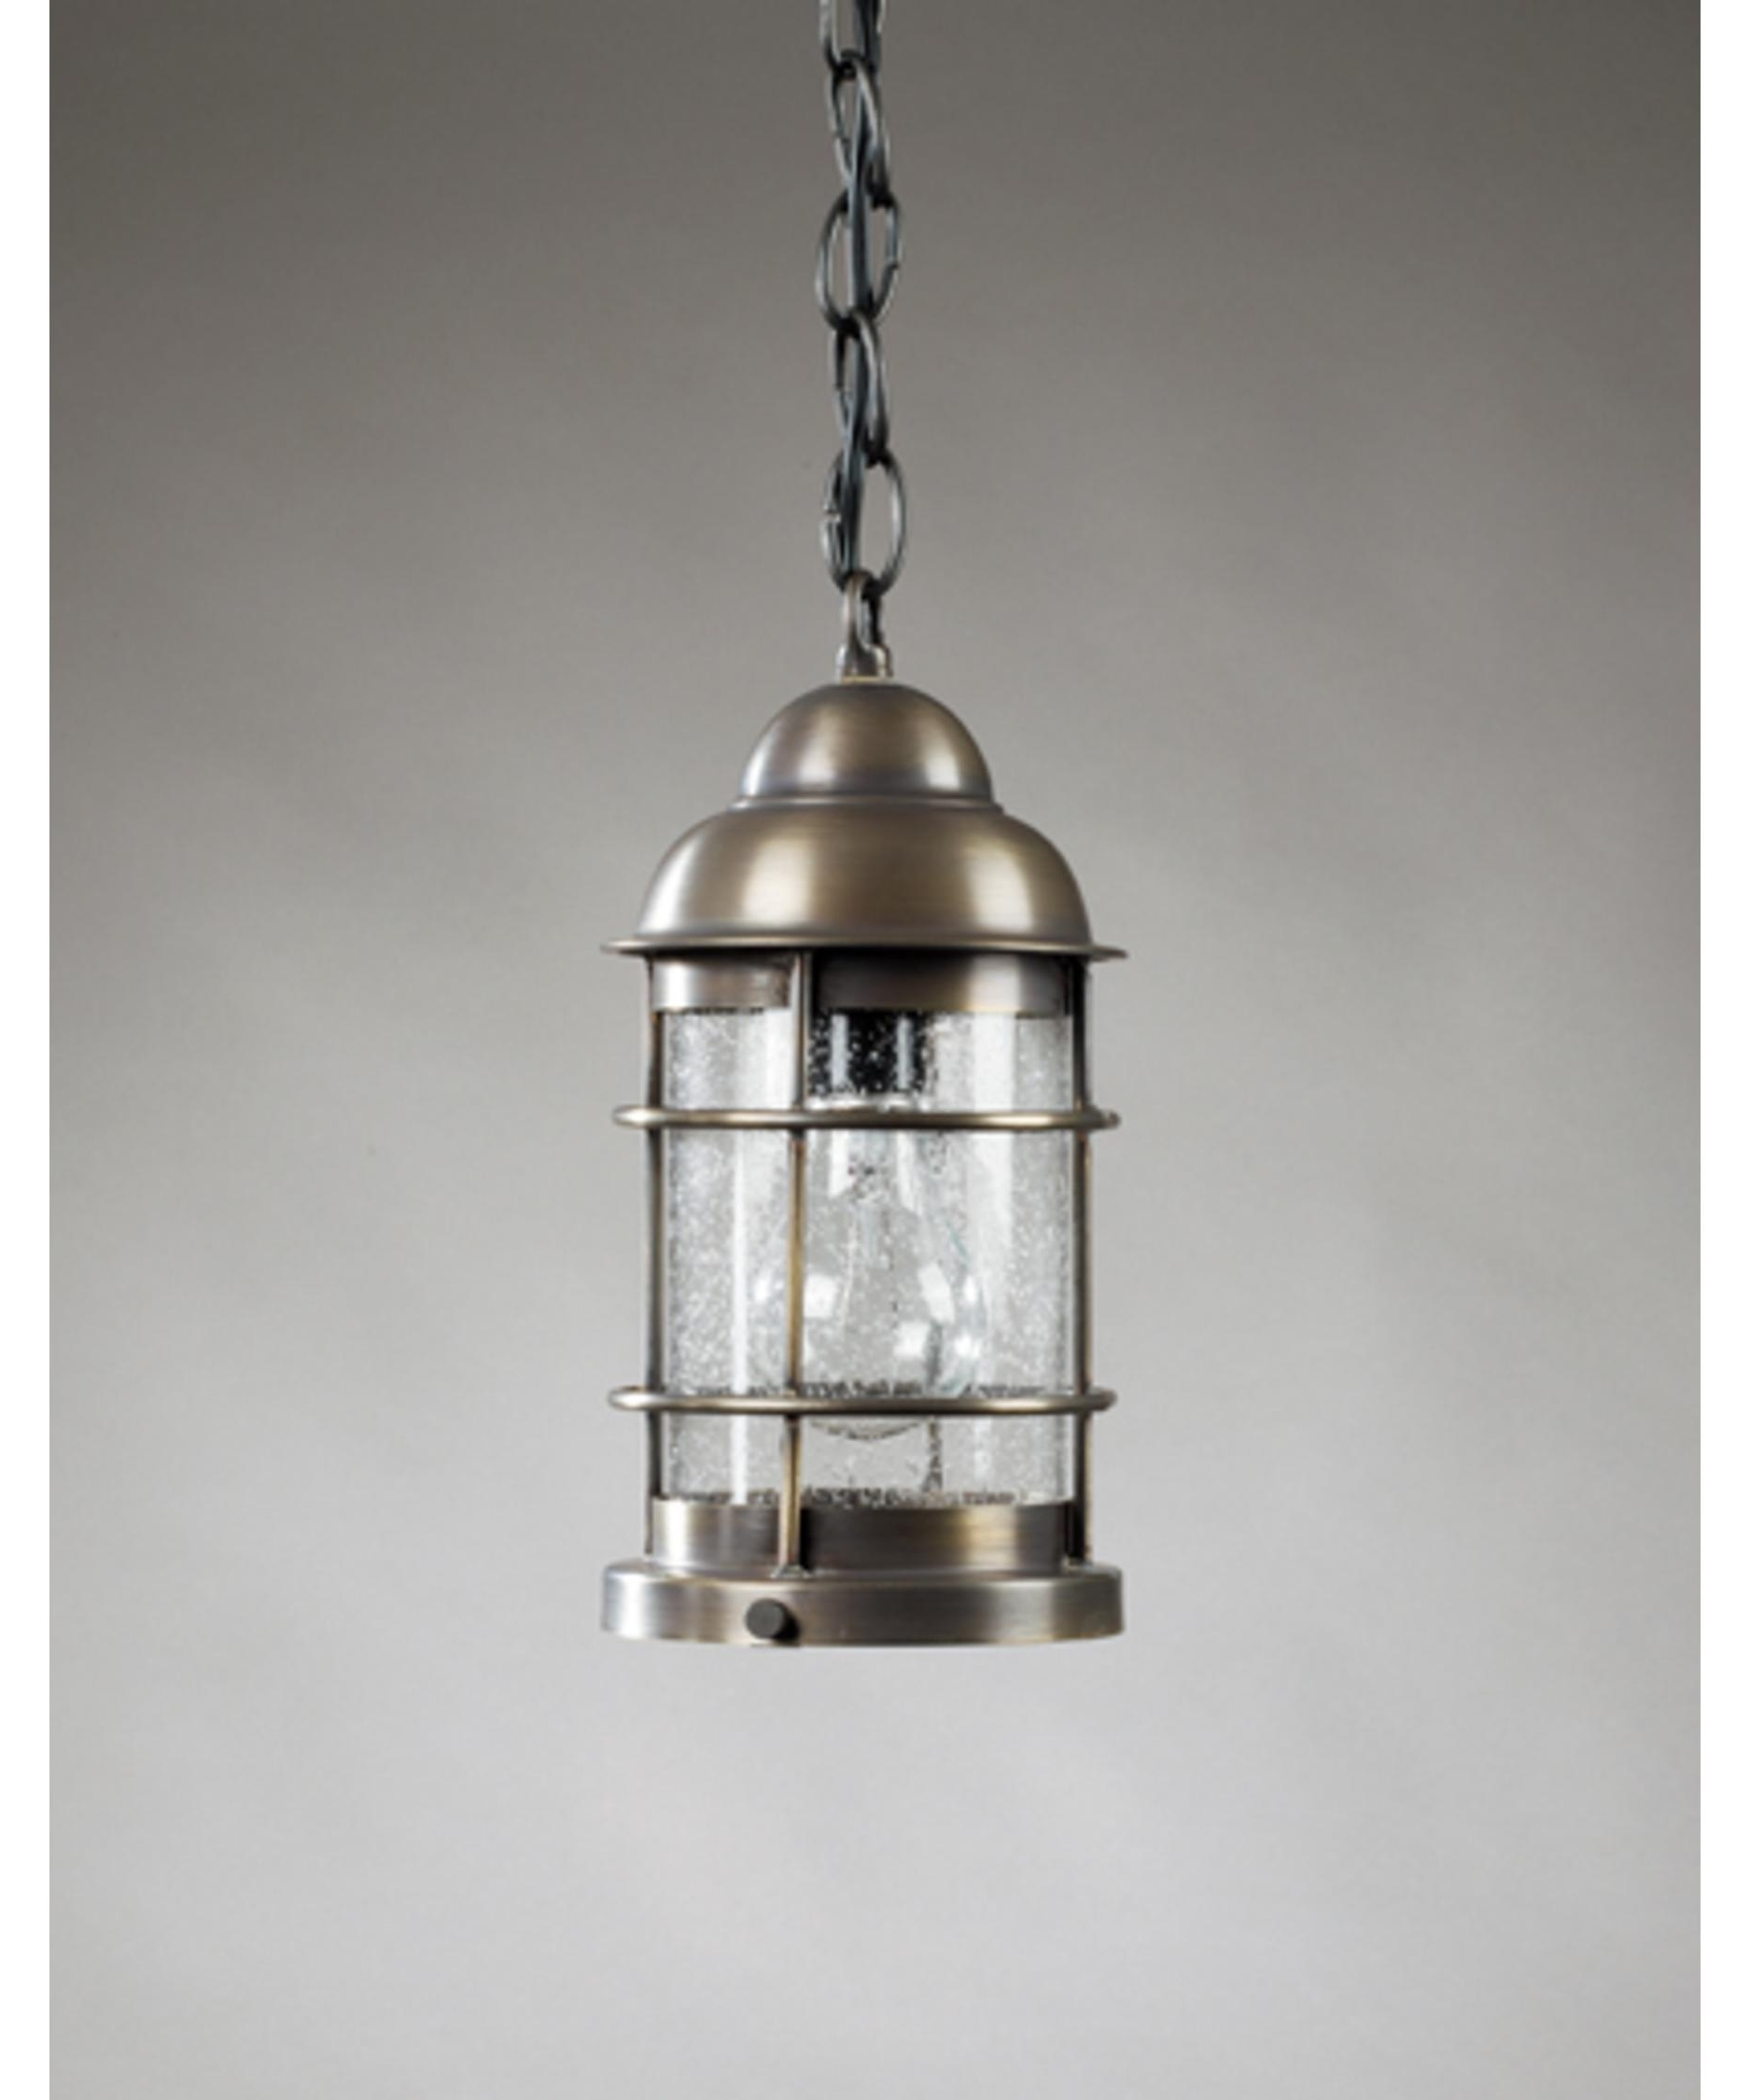 Northeast Lantern 3512 Med Nautical 6 Inch Wide 1 Light Outdoor With Regard To Most Recently Released Traditional Outdoor Ceiling Lights (View 10 of 20)